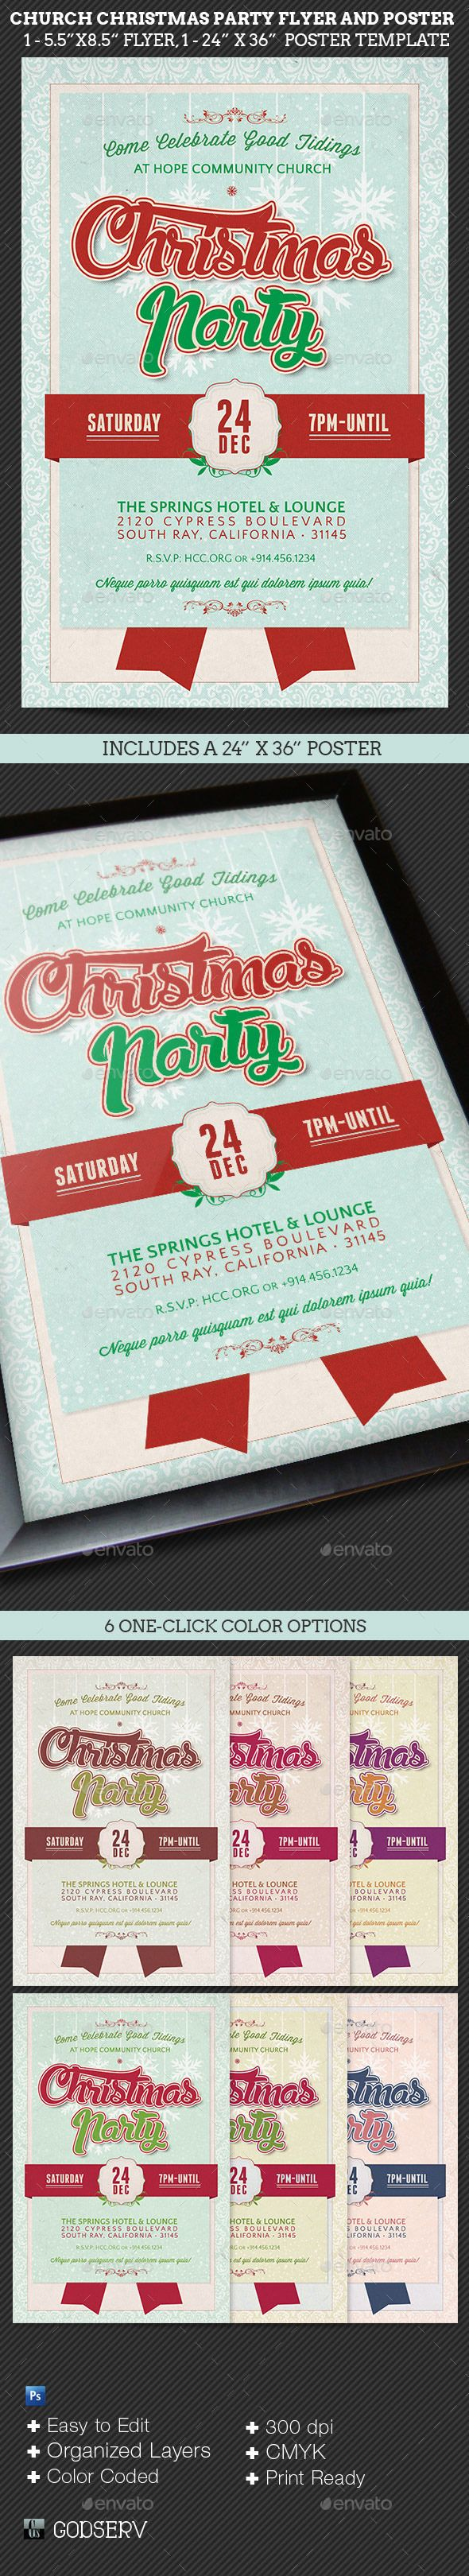 best images about christmas print templates church christmas party flyer poster template